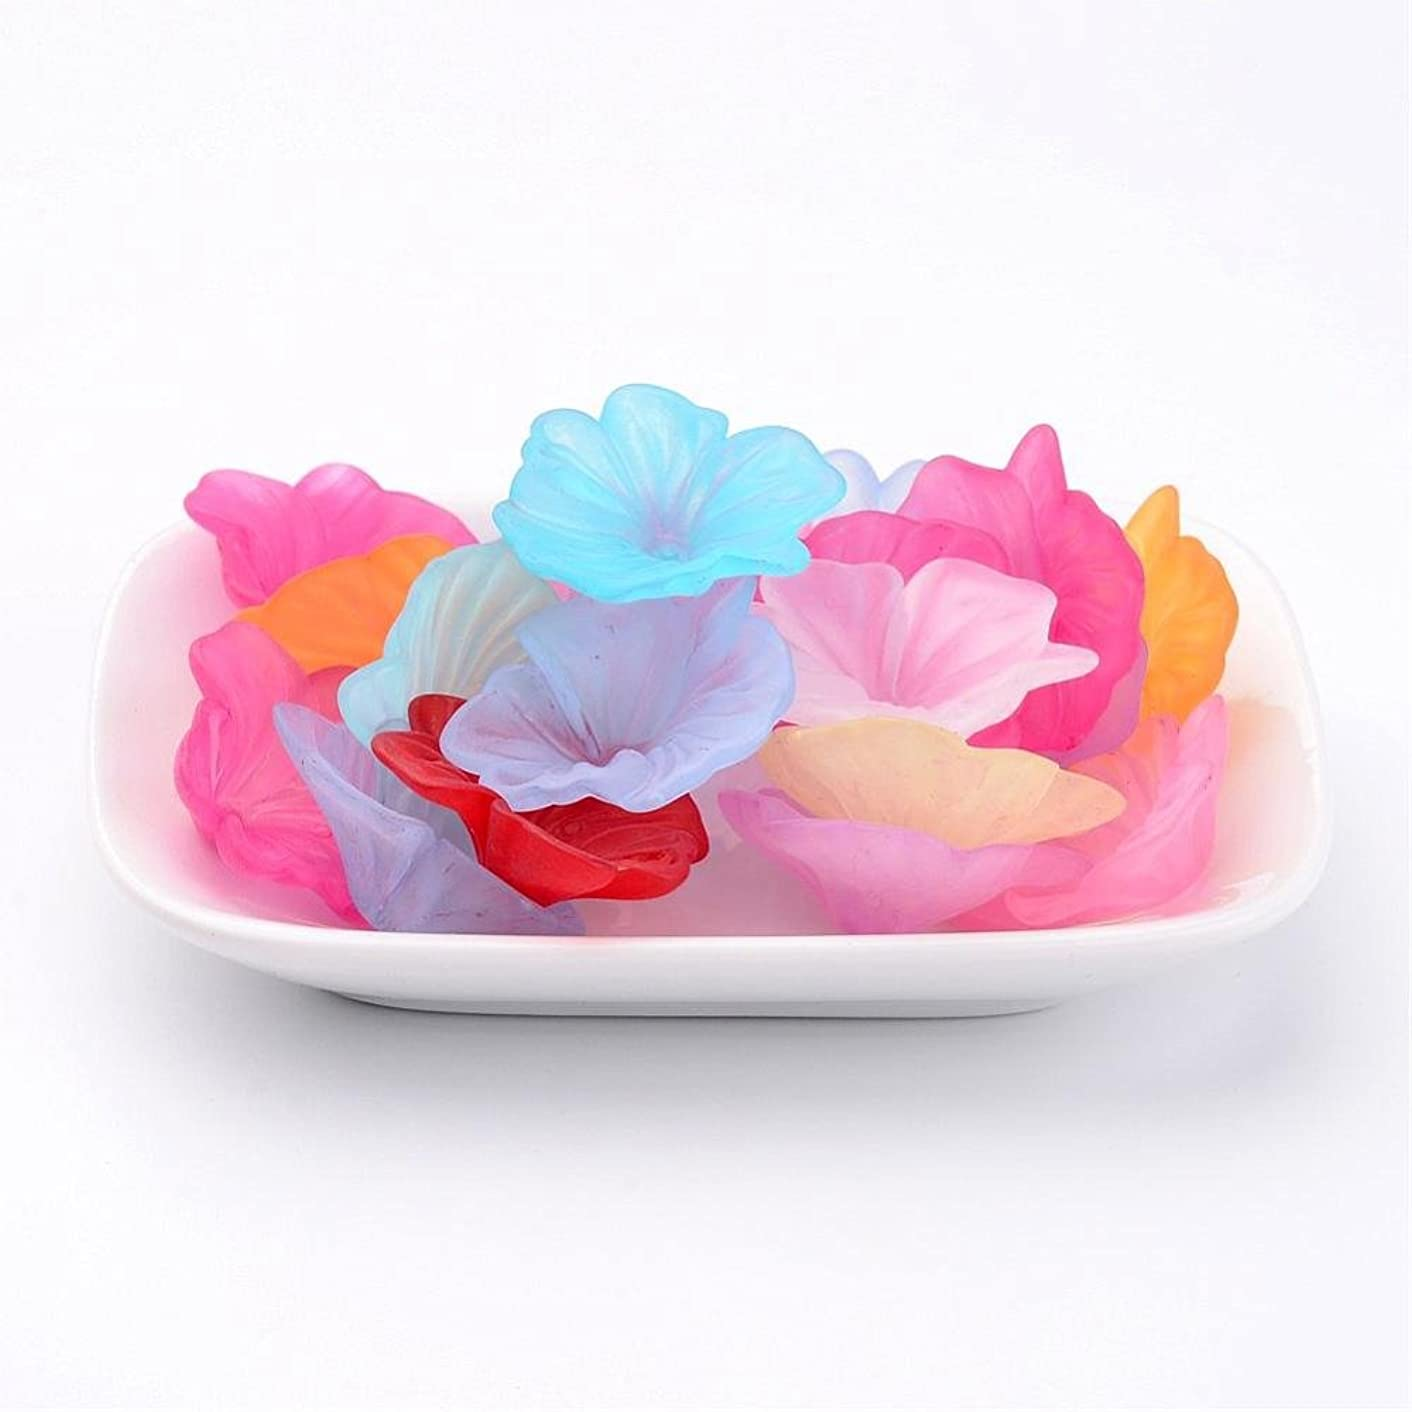 13pc Assorted Multicolor X- Large Frosted Acrylic Lucite Petunia Flower Beads Caps for Jewelry Making (33mm/1.3 inch)